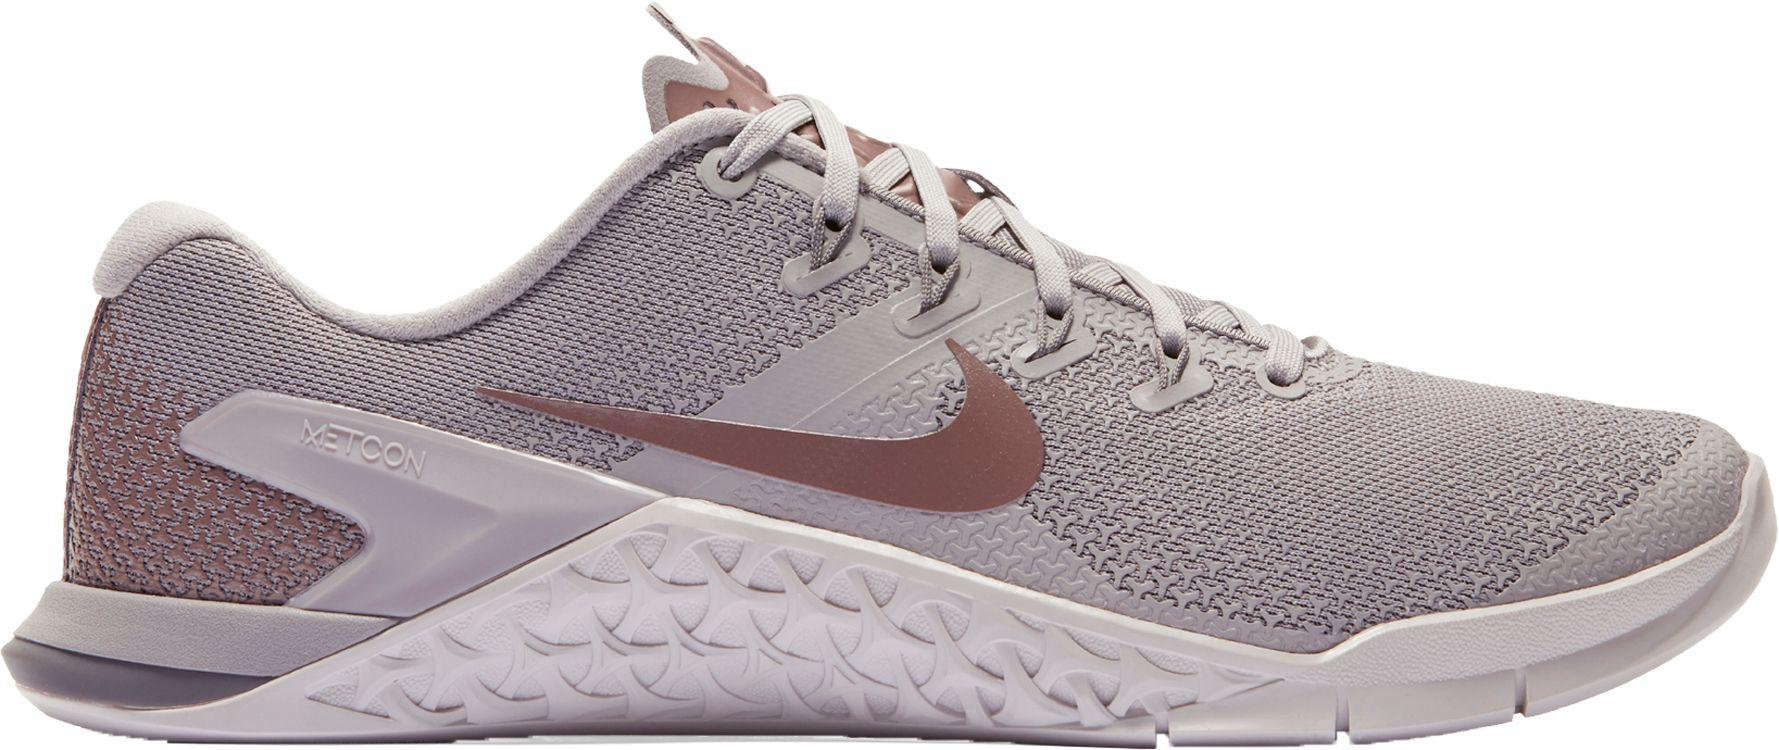 af2e7eb77ca6 Lyst - Nike Metcon 4 Lm Training Shoes in Gray